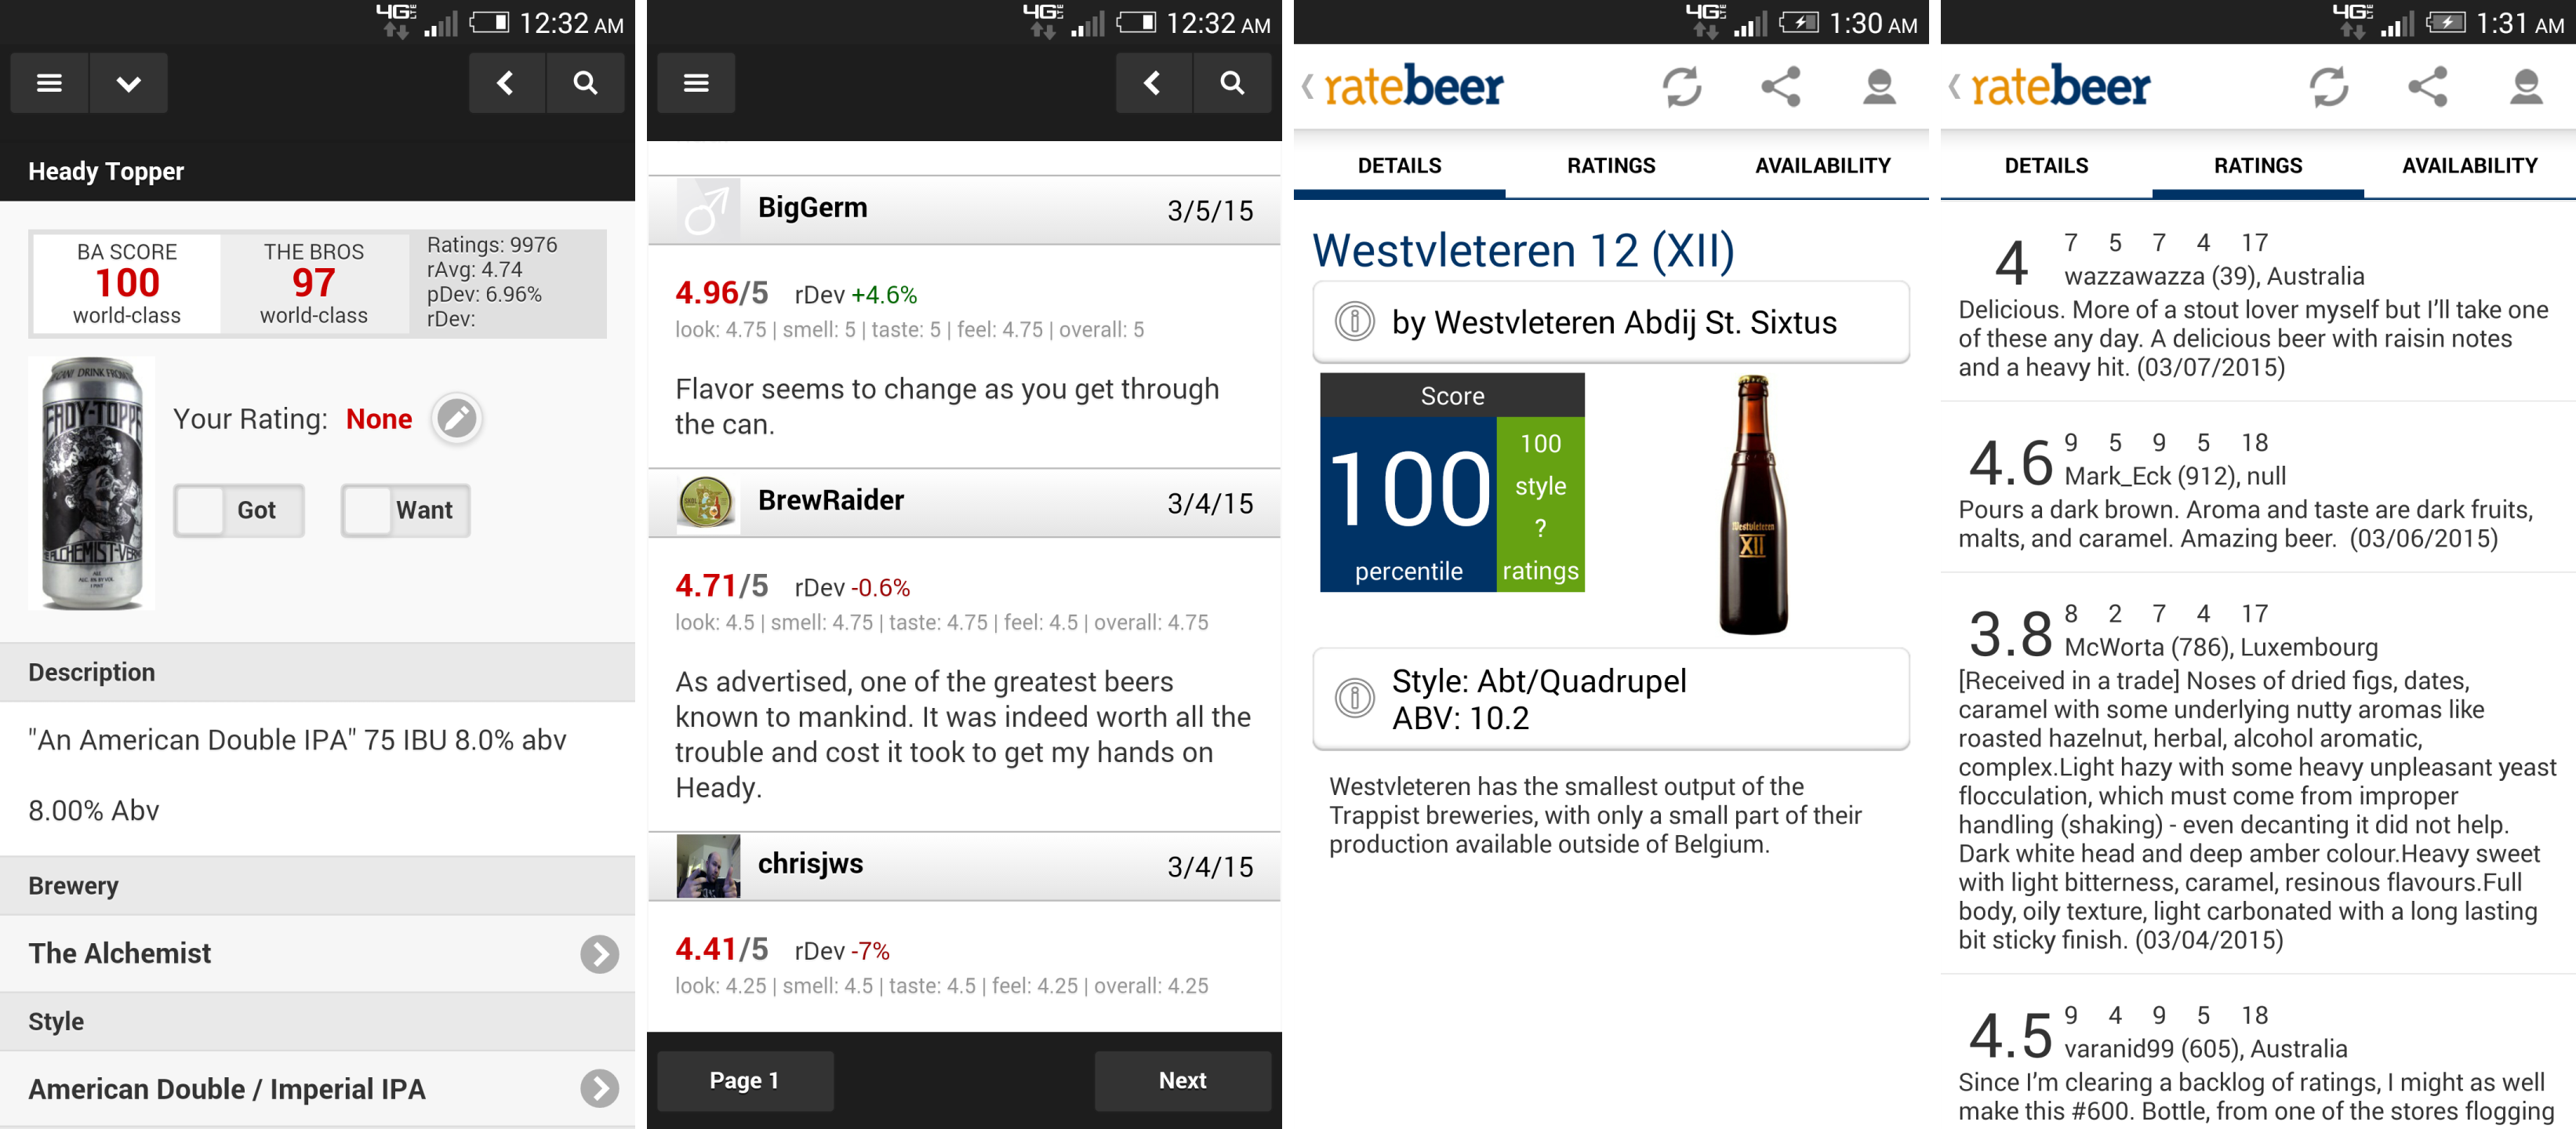 Viewing the beers and the ratings on each app